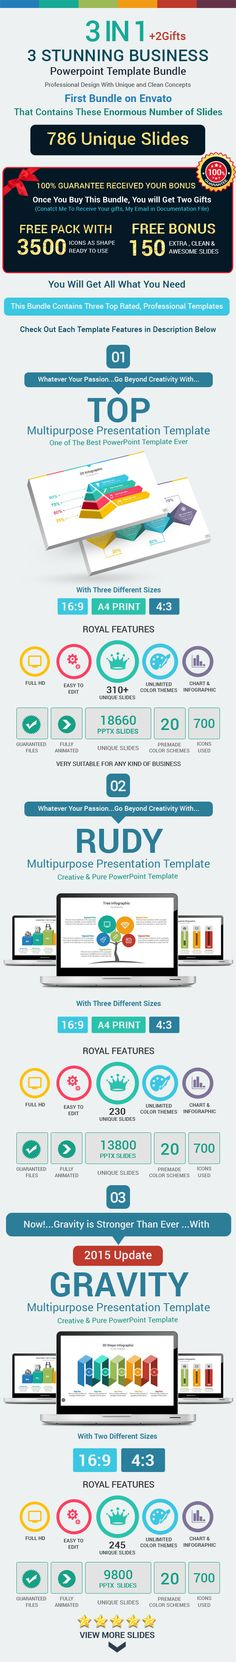 3 Stunning Business Powerpoint Template Bundle (PowerPoint Templates)